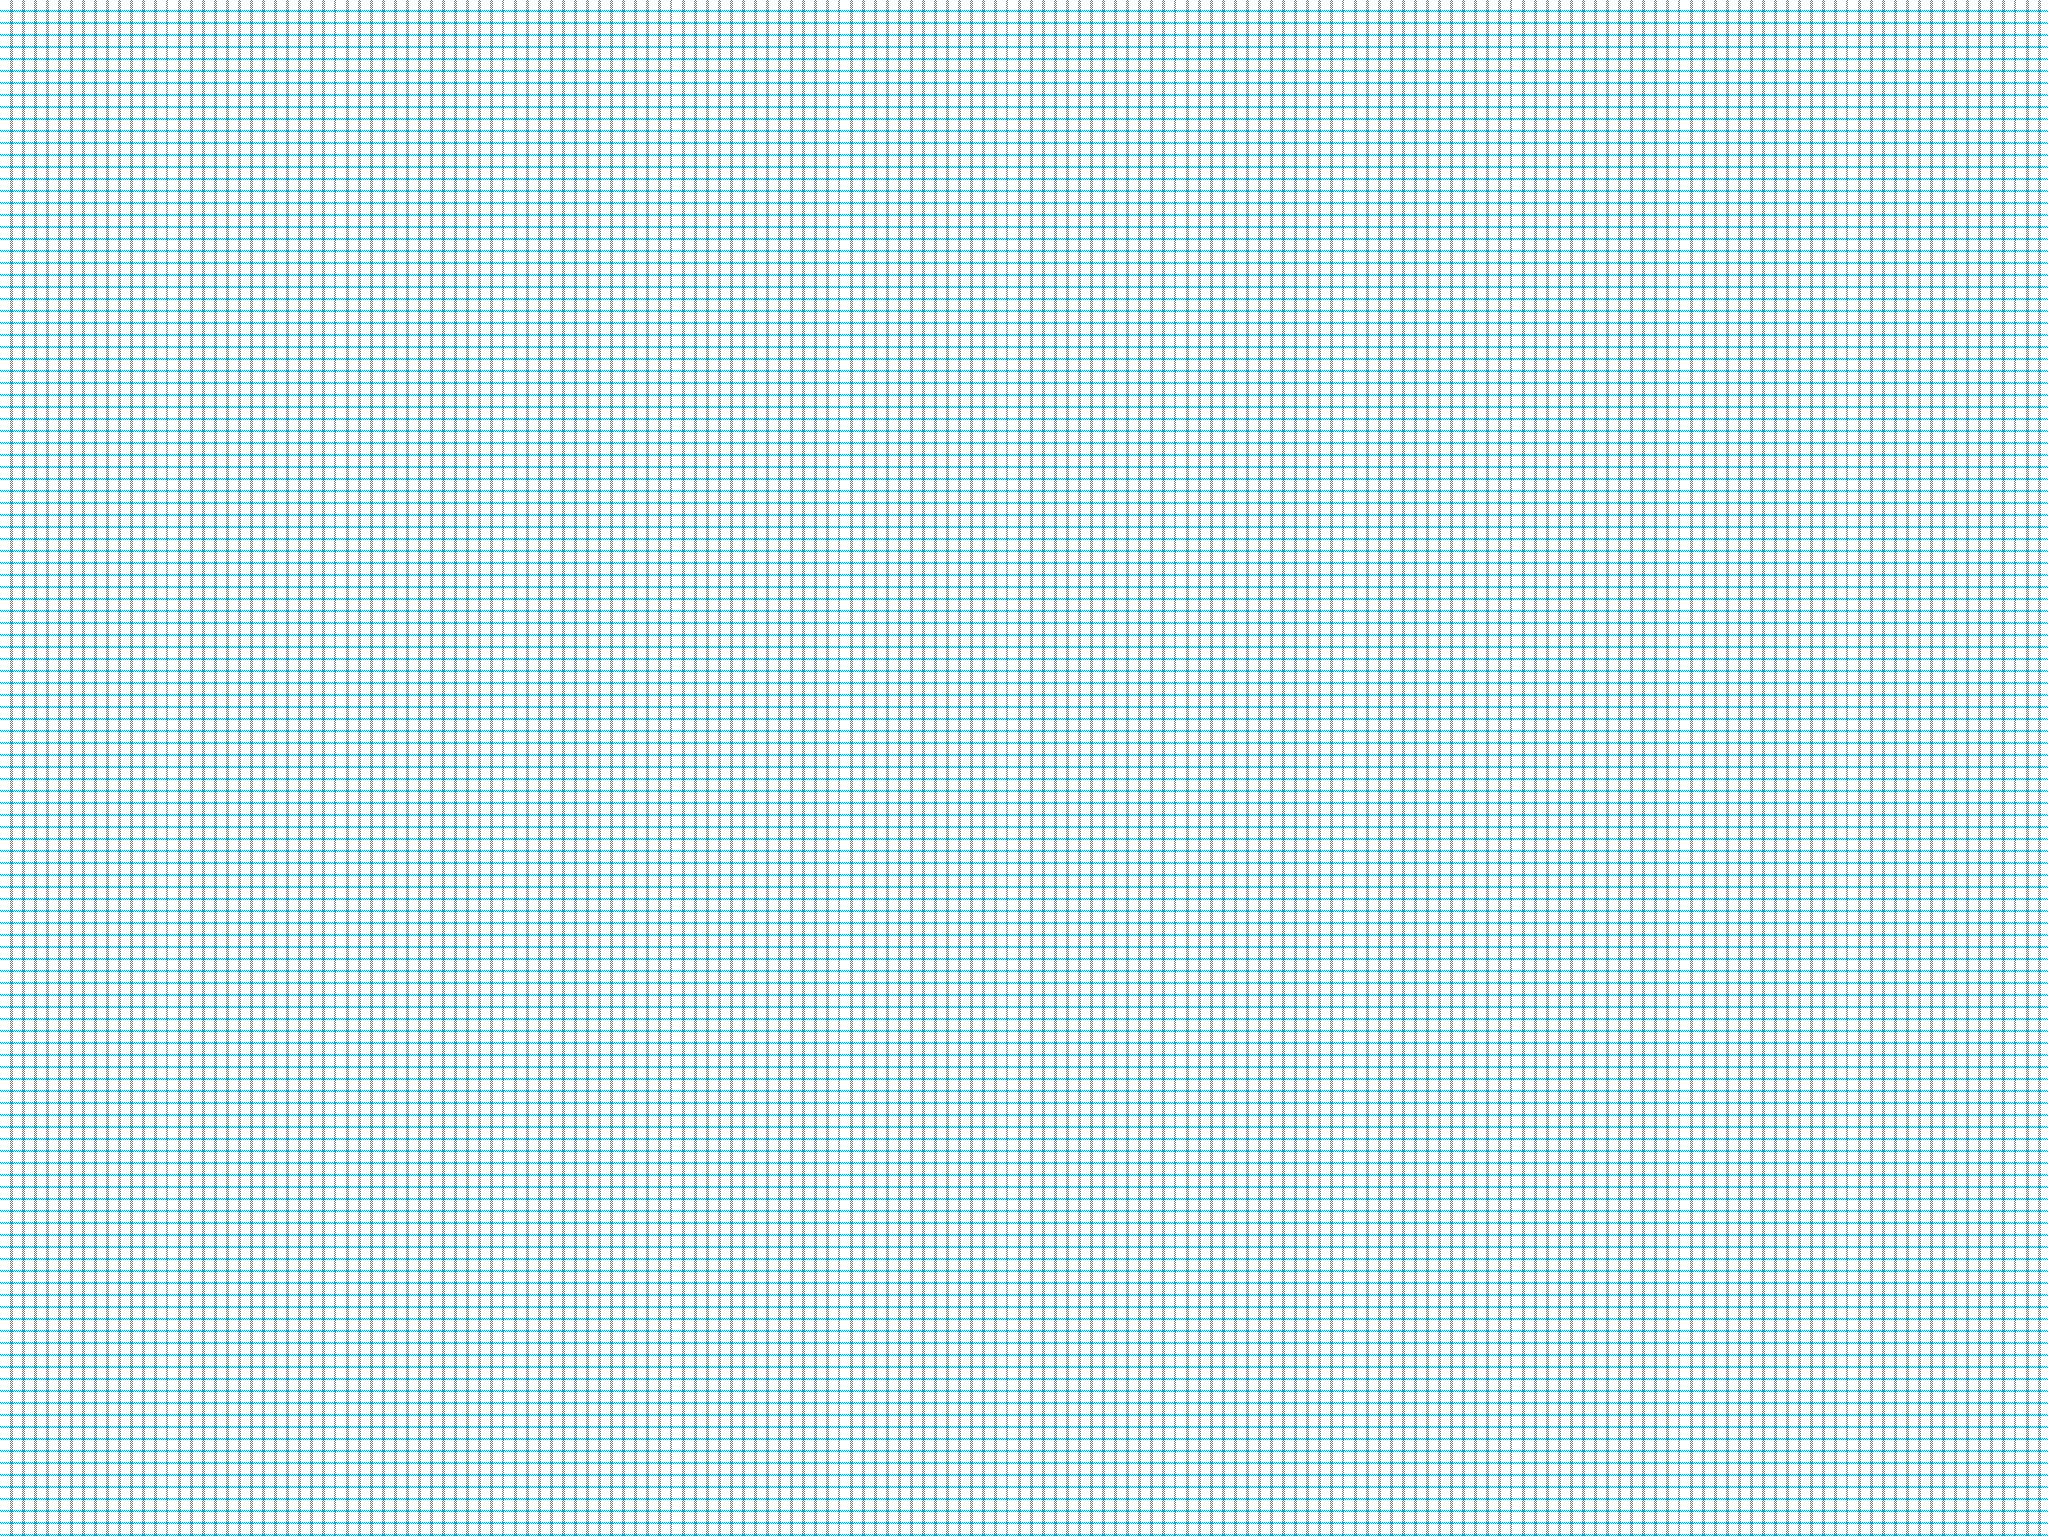 paper grid background texture  lined paper image